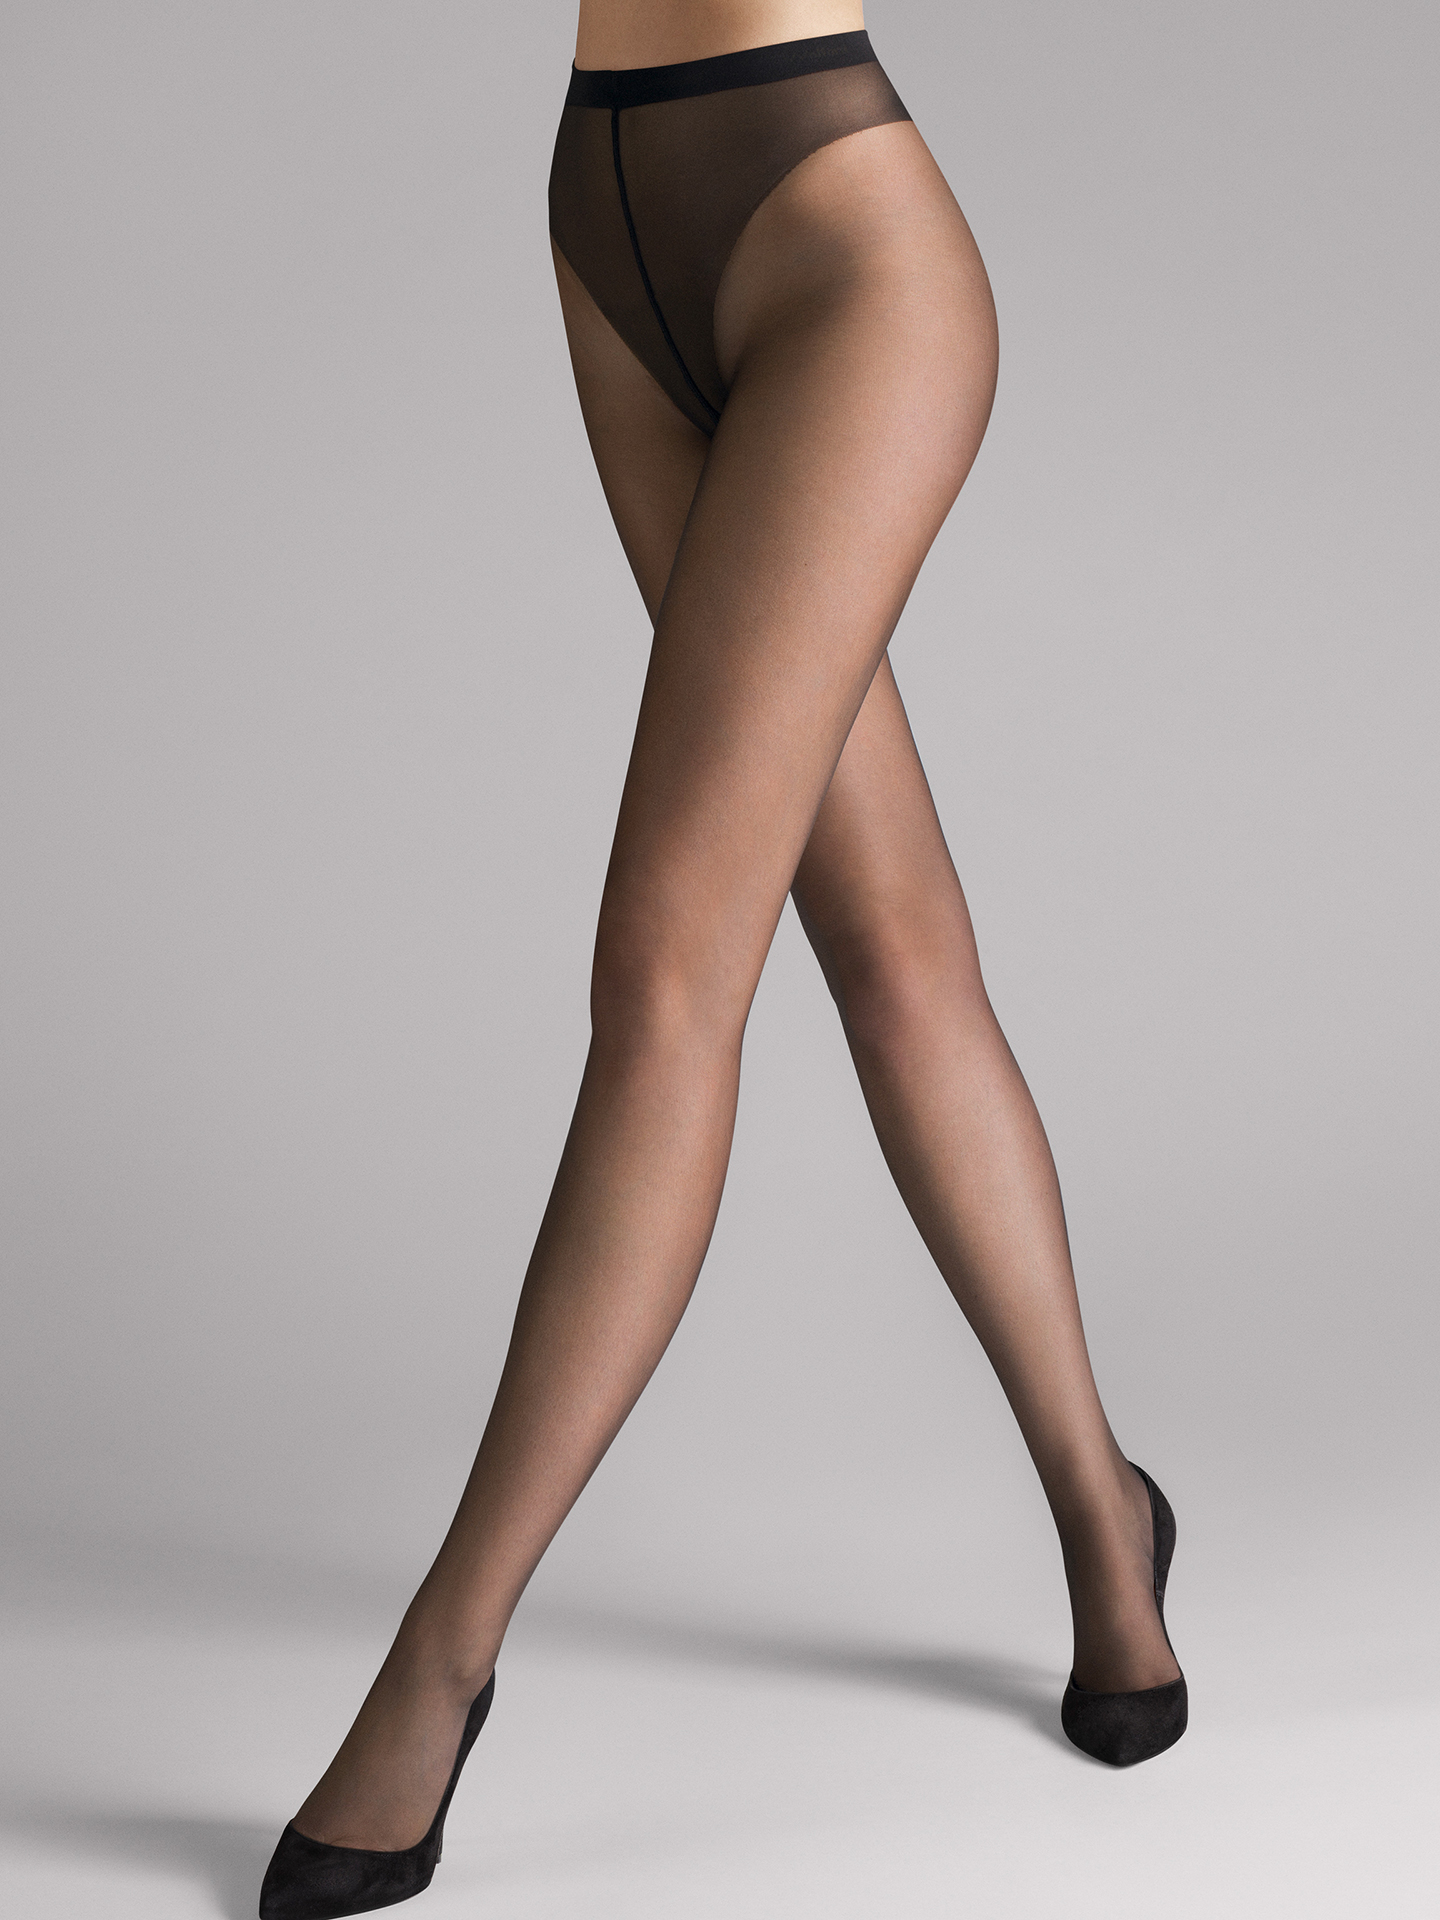 Luxe 9 Tights - black - M | Sportbekleidung > Sporthosen > Tights | Wolford